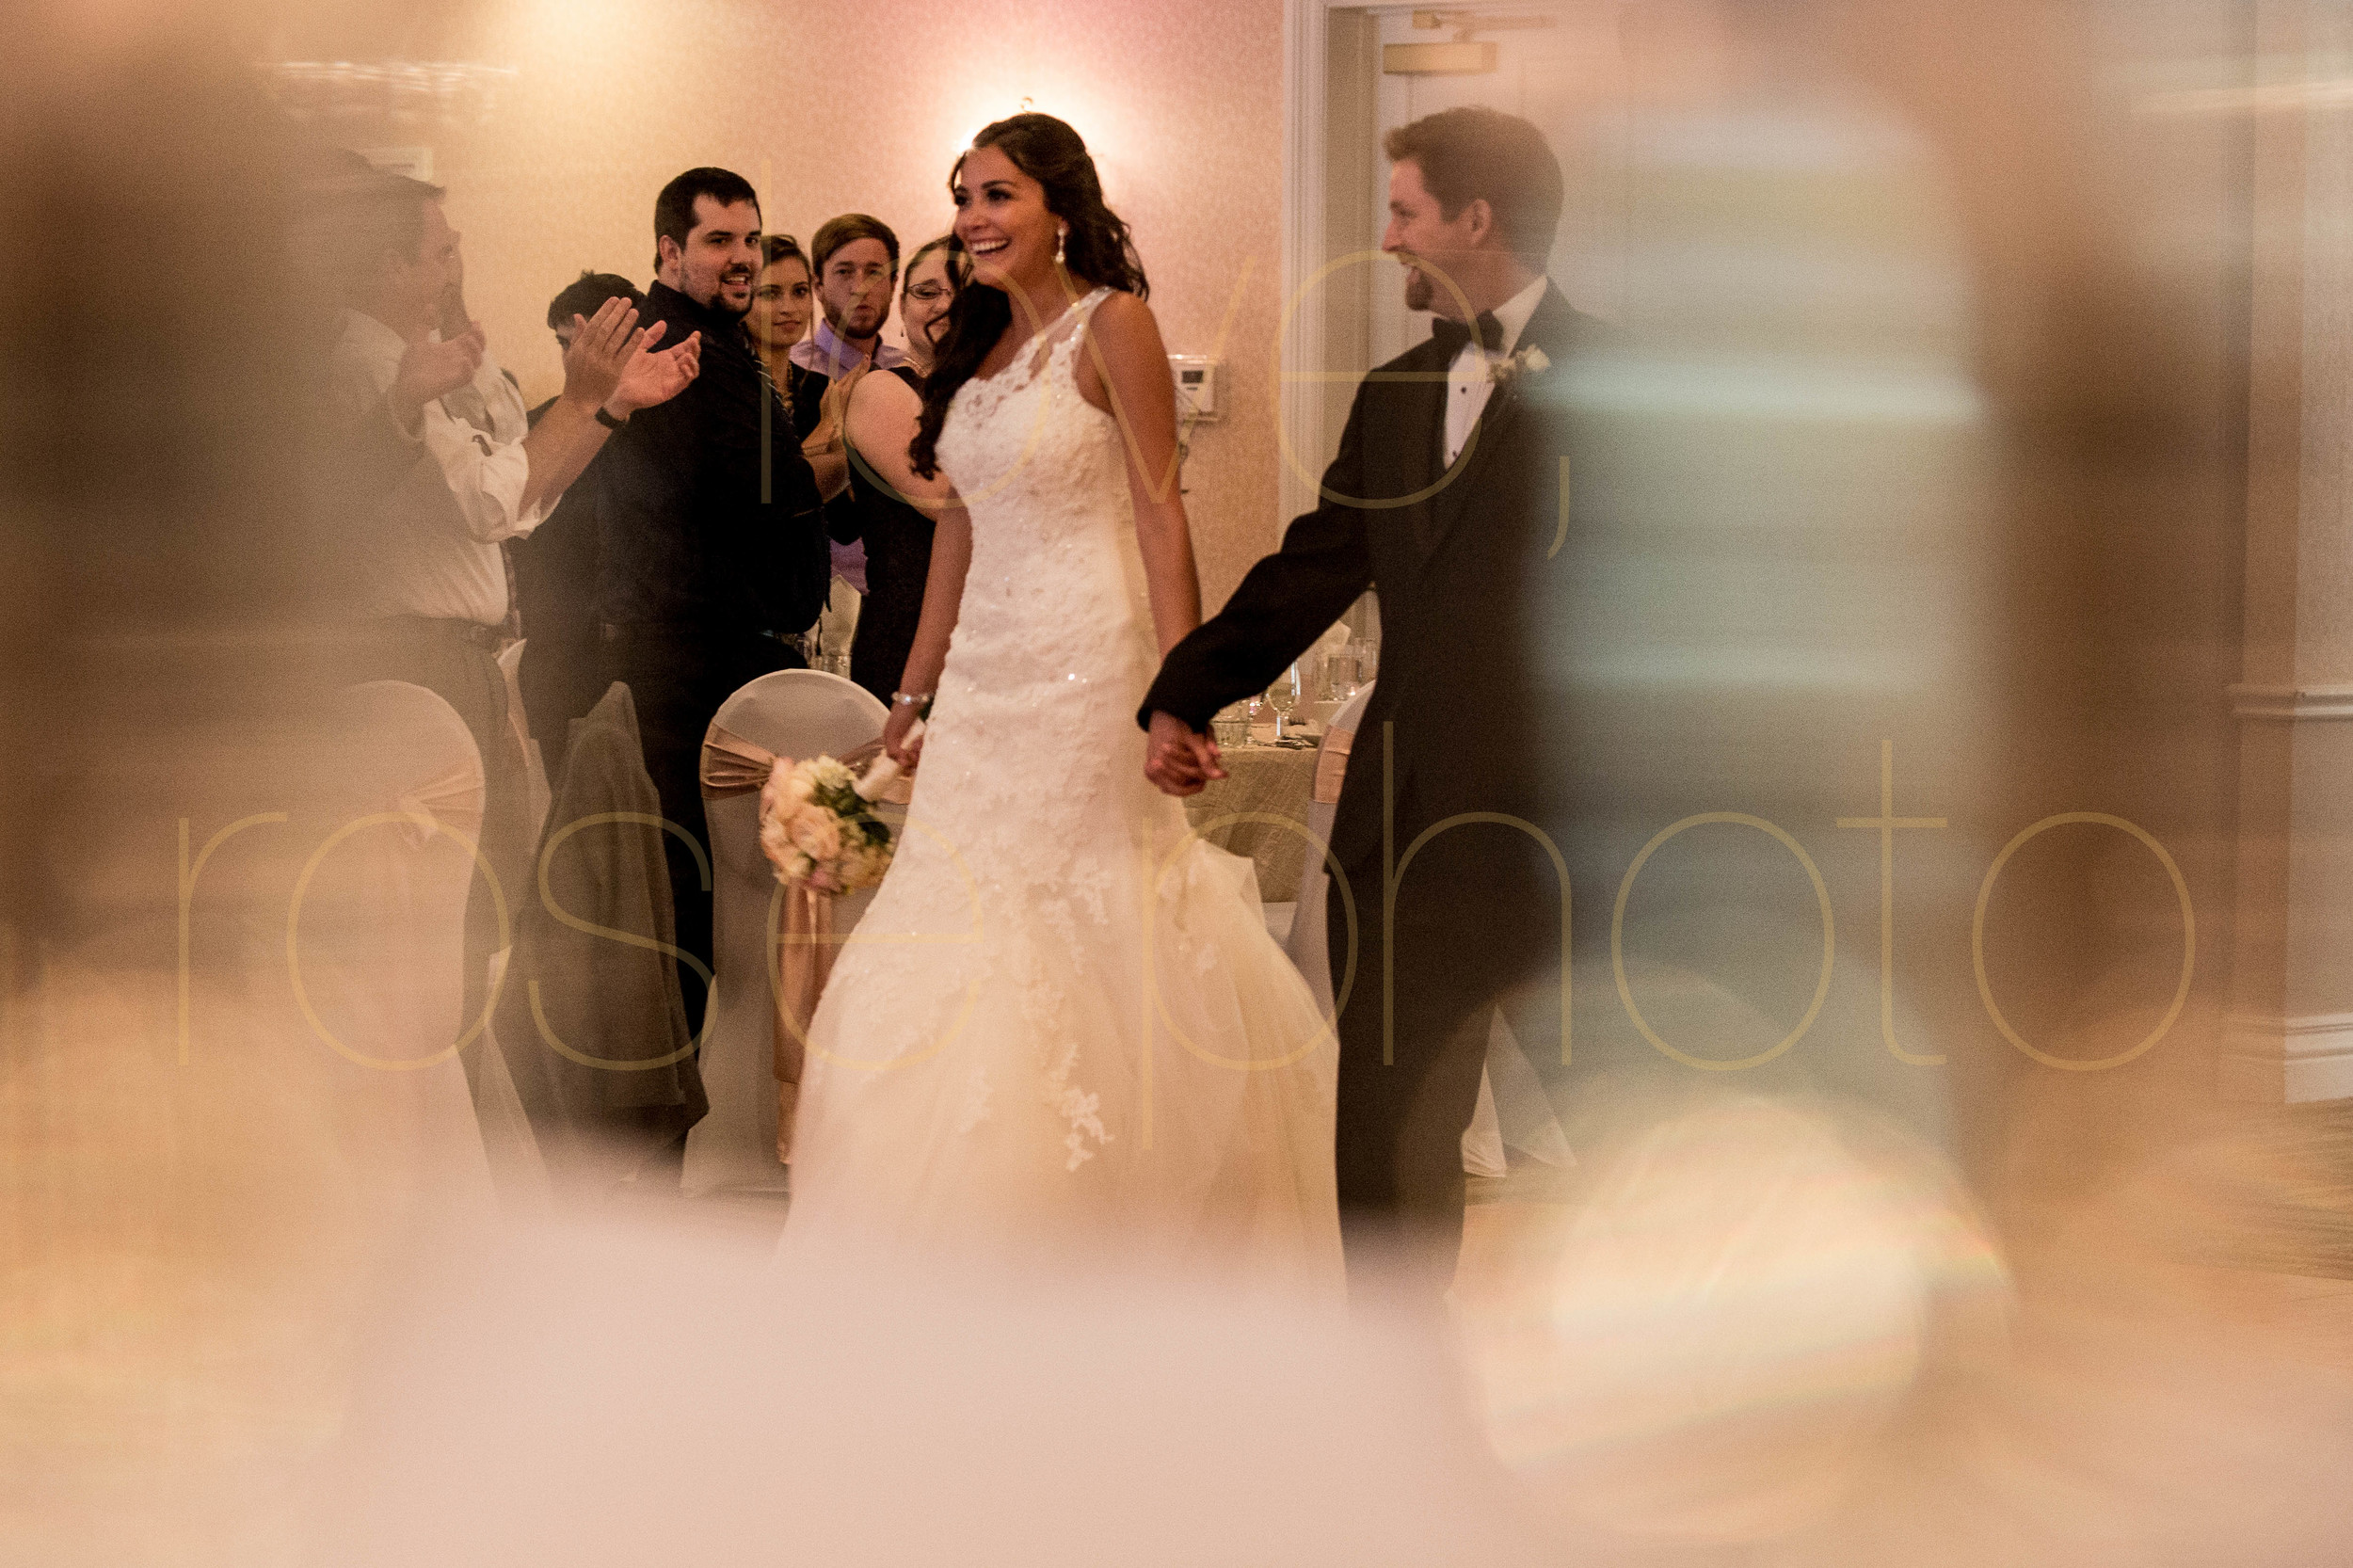 Claudia + Grant Heidel House Wiscon lake wedding best of chicago wedding photographers -33.jpg